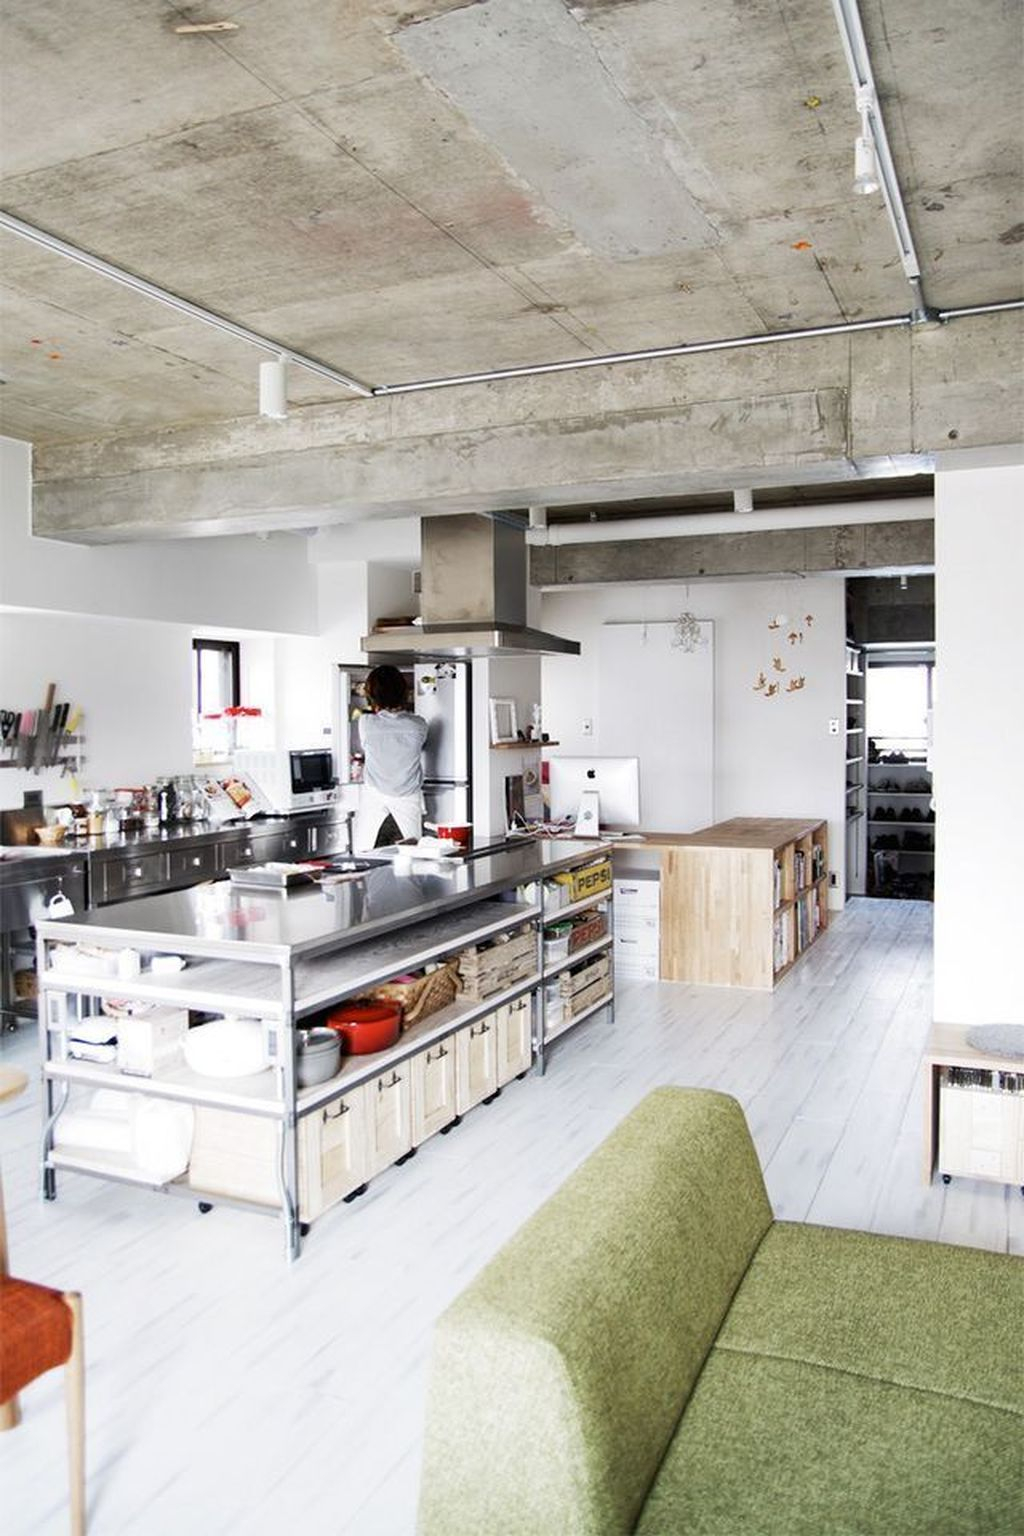 Elegant Minimalist Kitchen Design Ideas For Small Space To Try 30